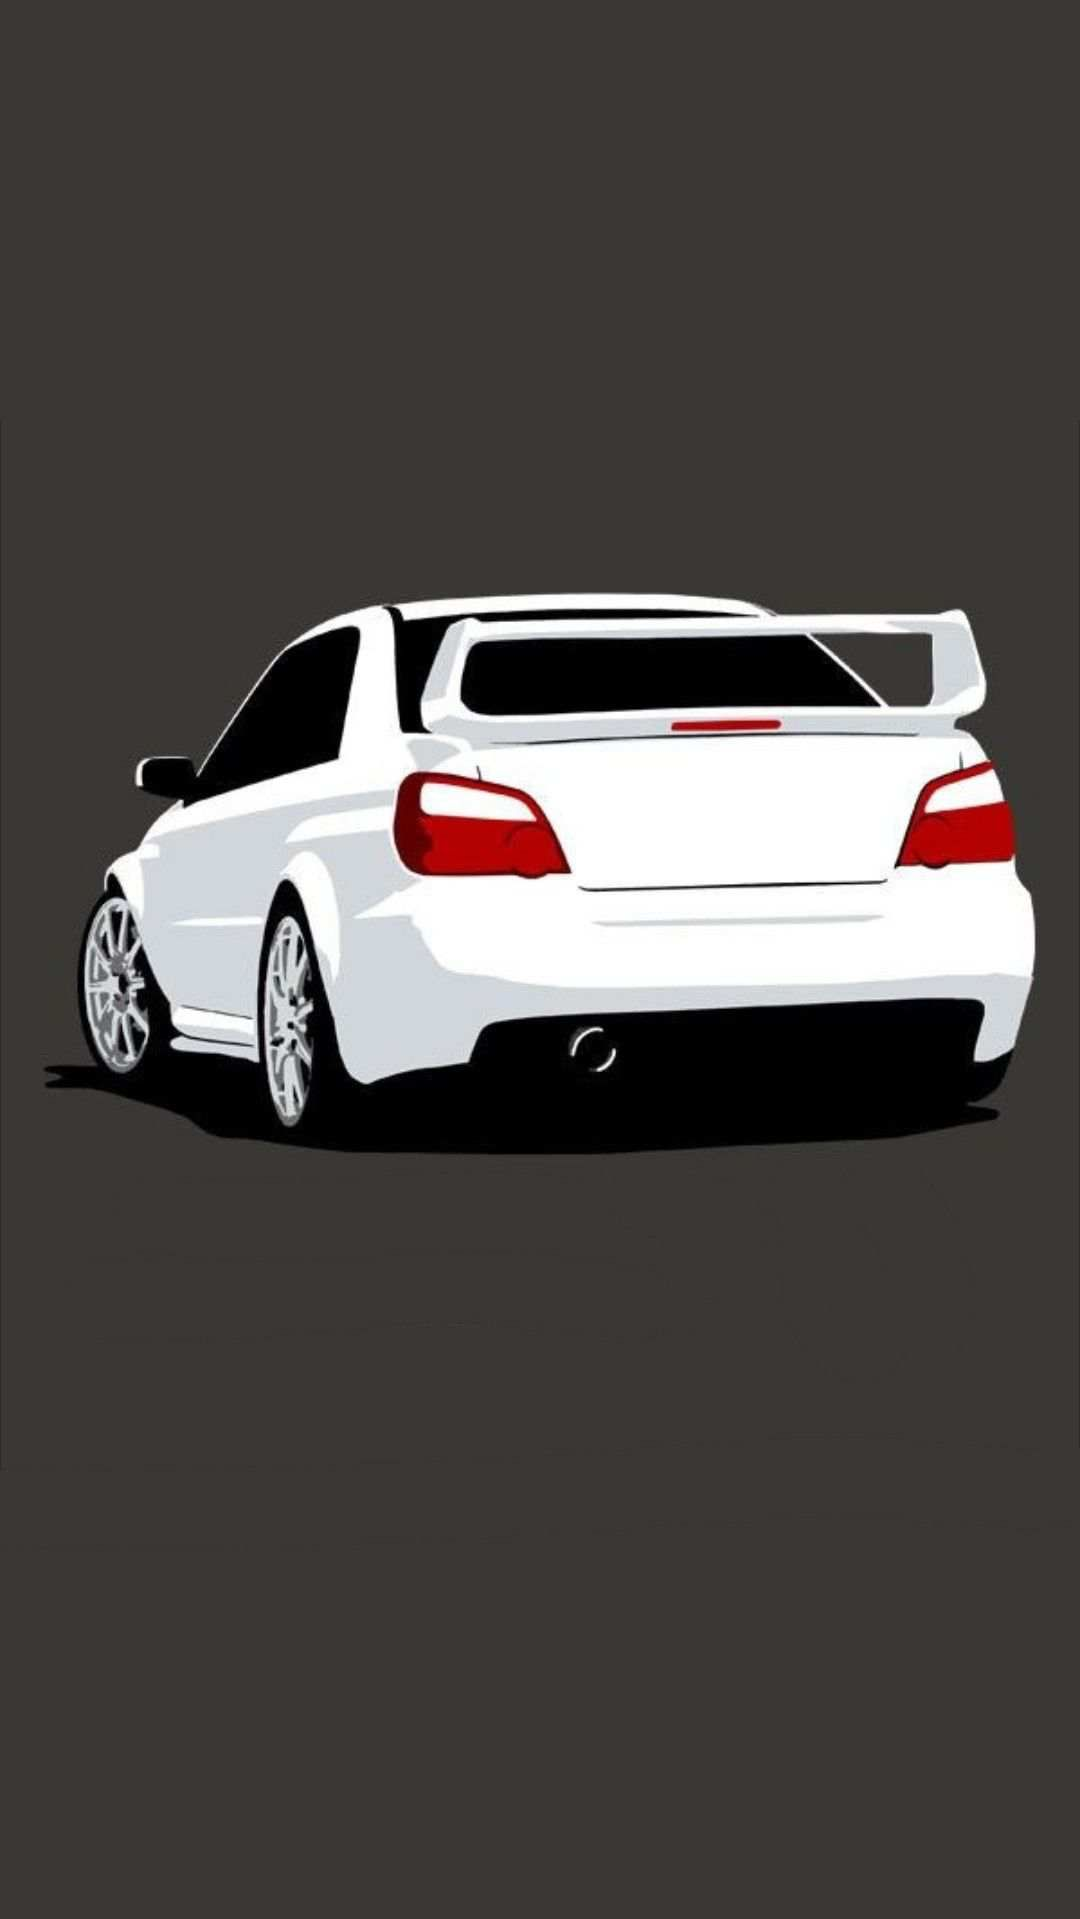 Minimal Car Wallpaper Jdm Wallpaper Android Wallpaper Marvel